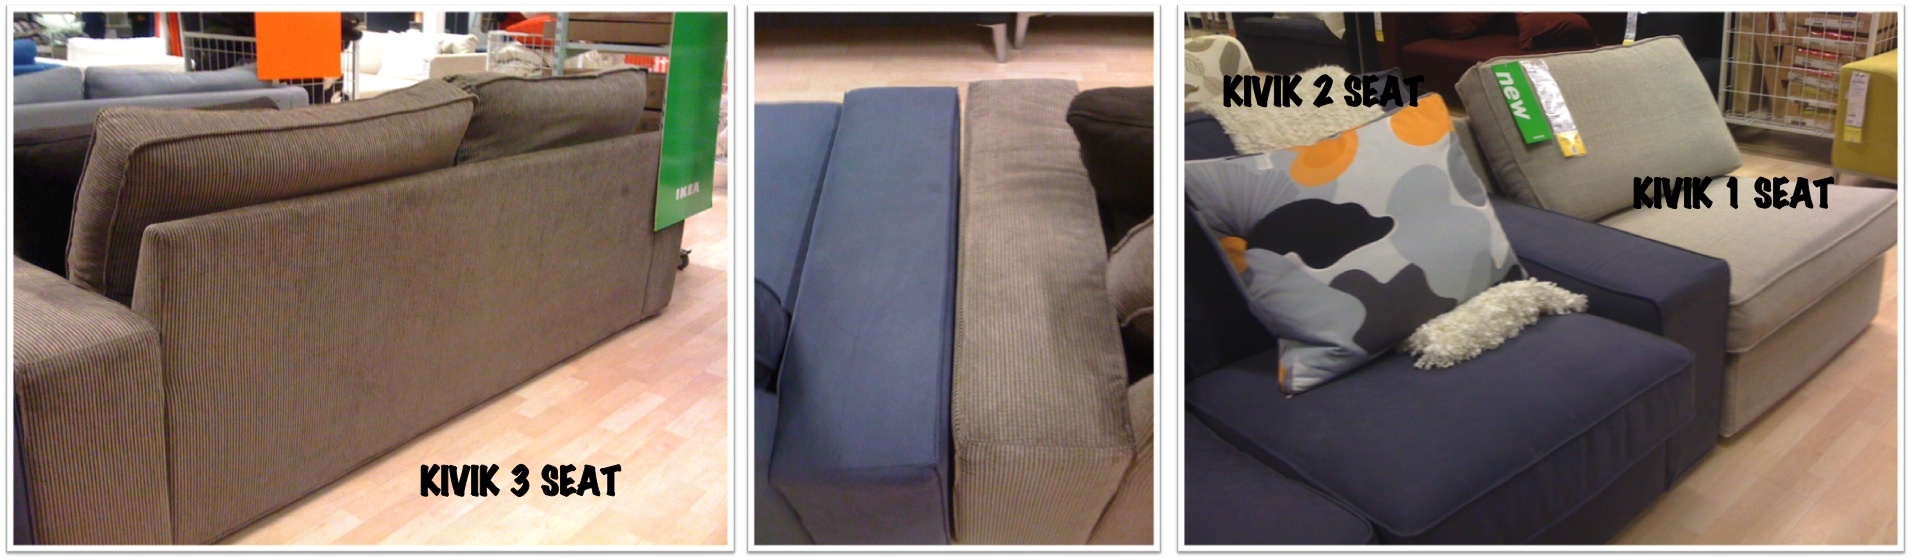 Ikea Kivik Sofa Series Review Comfort Works Blog Design Inspirations